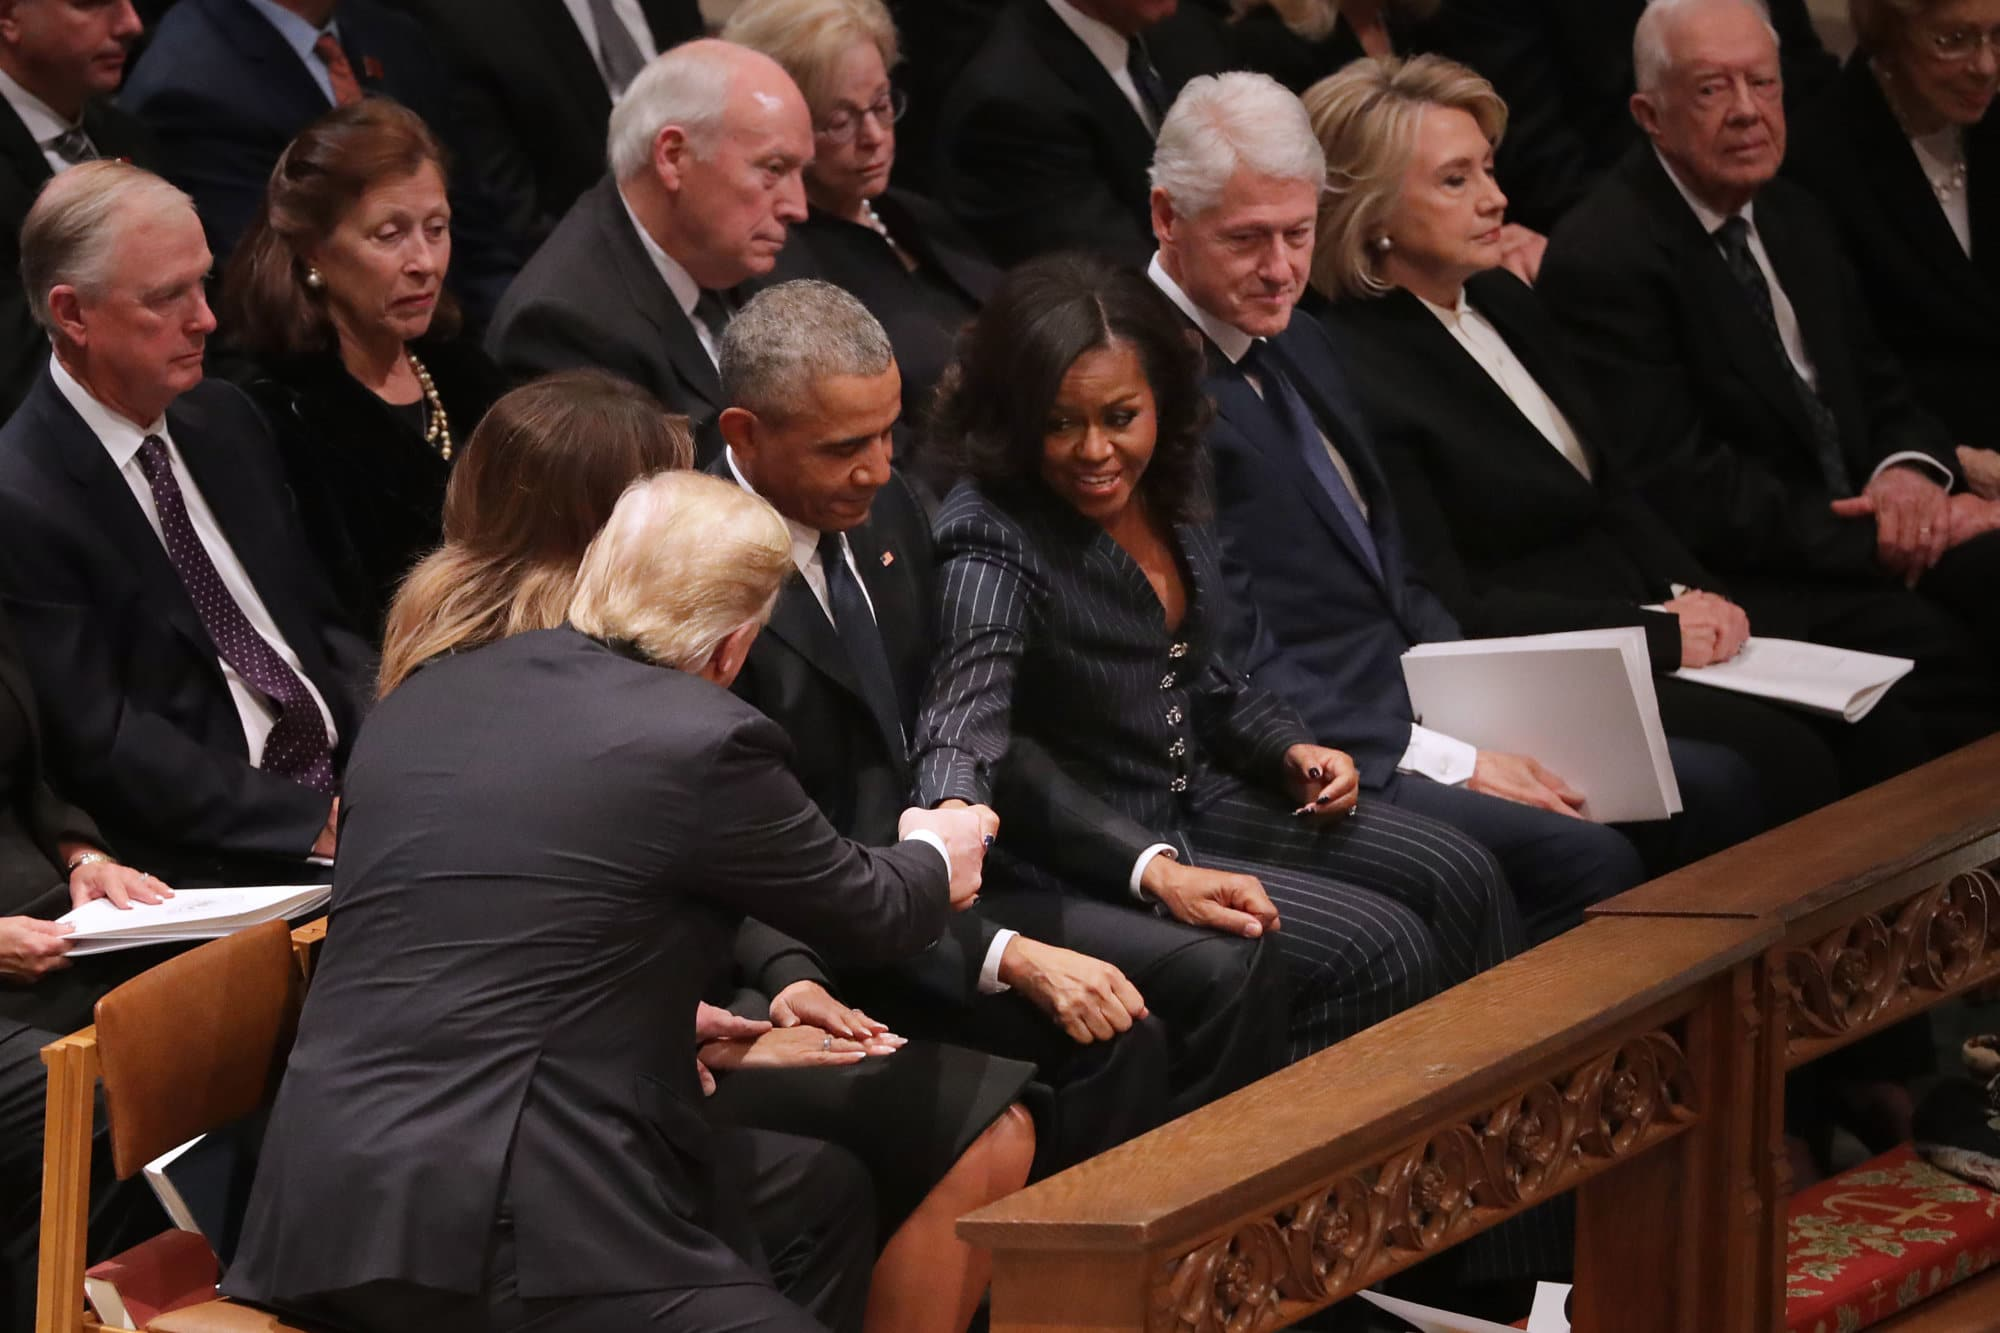 President Donald Trump and first lady Melania Trump greet former President Barack Obama and Michelle Obama as they join other former presidents and vice presidents and their spouses for the state funeral for former President George H.W. Bush at the National Cathedral December 05, 2018 in Washington, DC. A WWII combat veteran, Bush served as a member of Congress from Texas, ambassador to the United Nations, director of the CIA, vice president and 41st president of the United States.  (Photo by Chip Somodevilla/Getty Images)